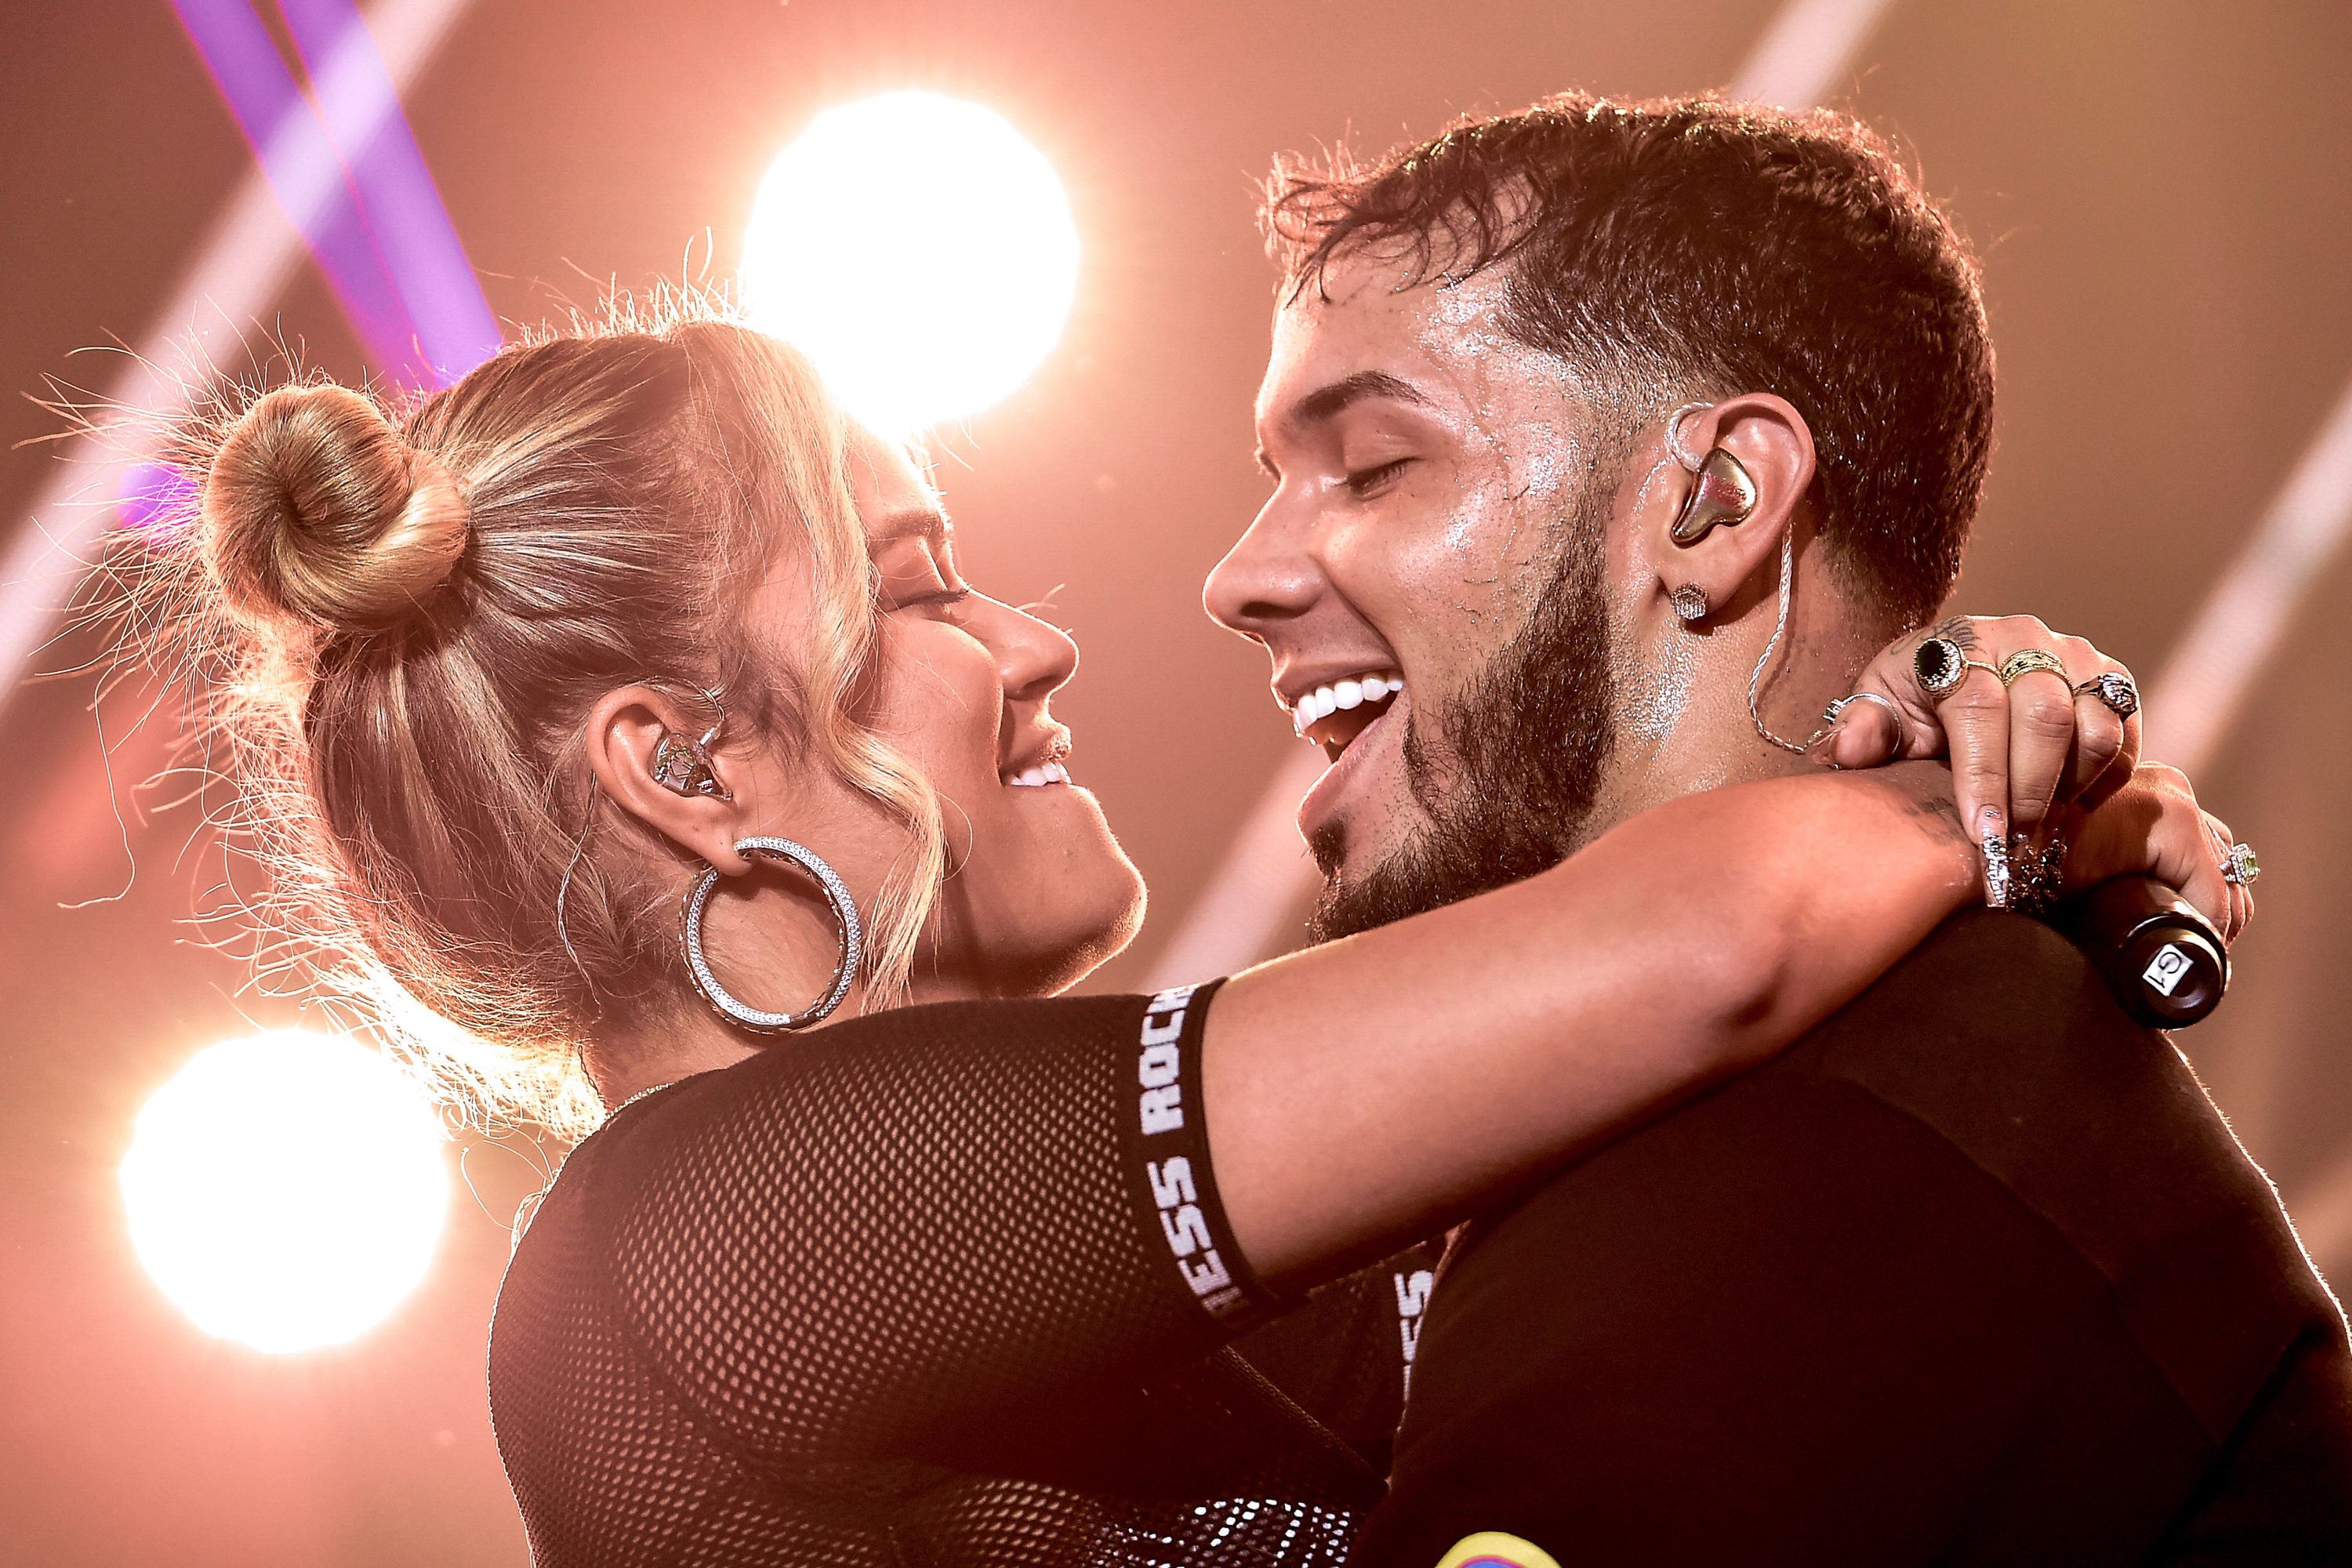 Anuel AA and Karol G's 'Secreto' Leaked Early, But It Blew Up Anyway